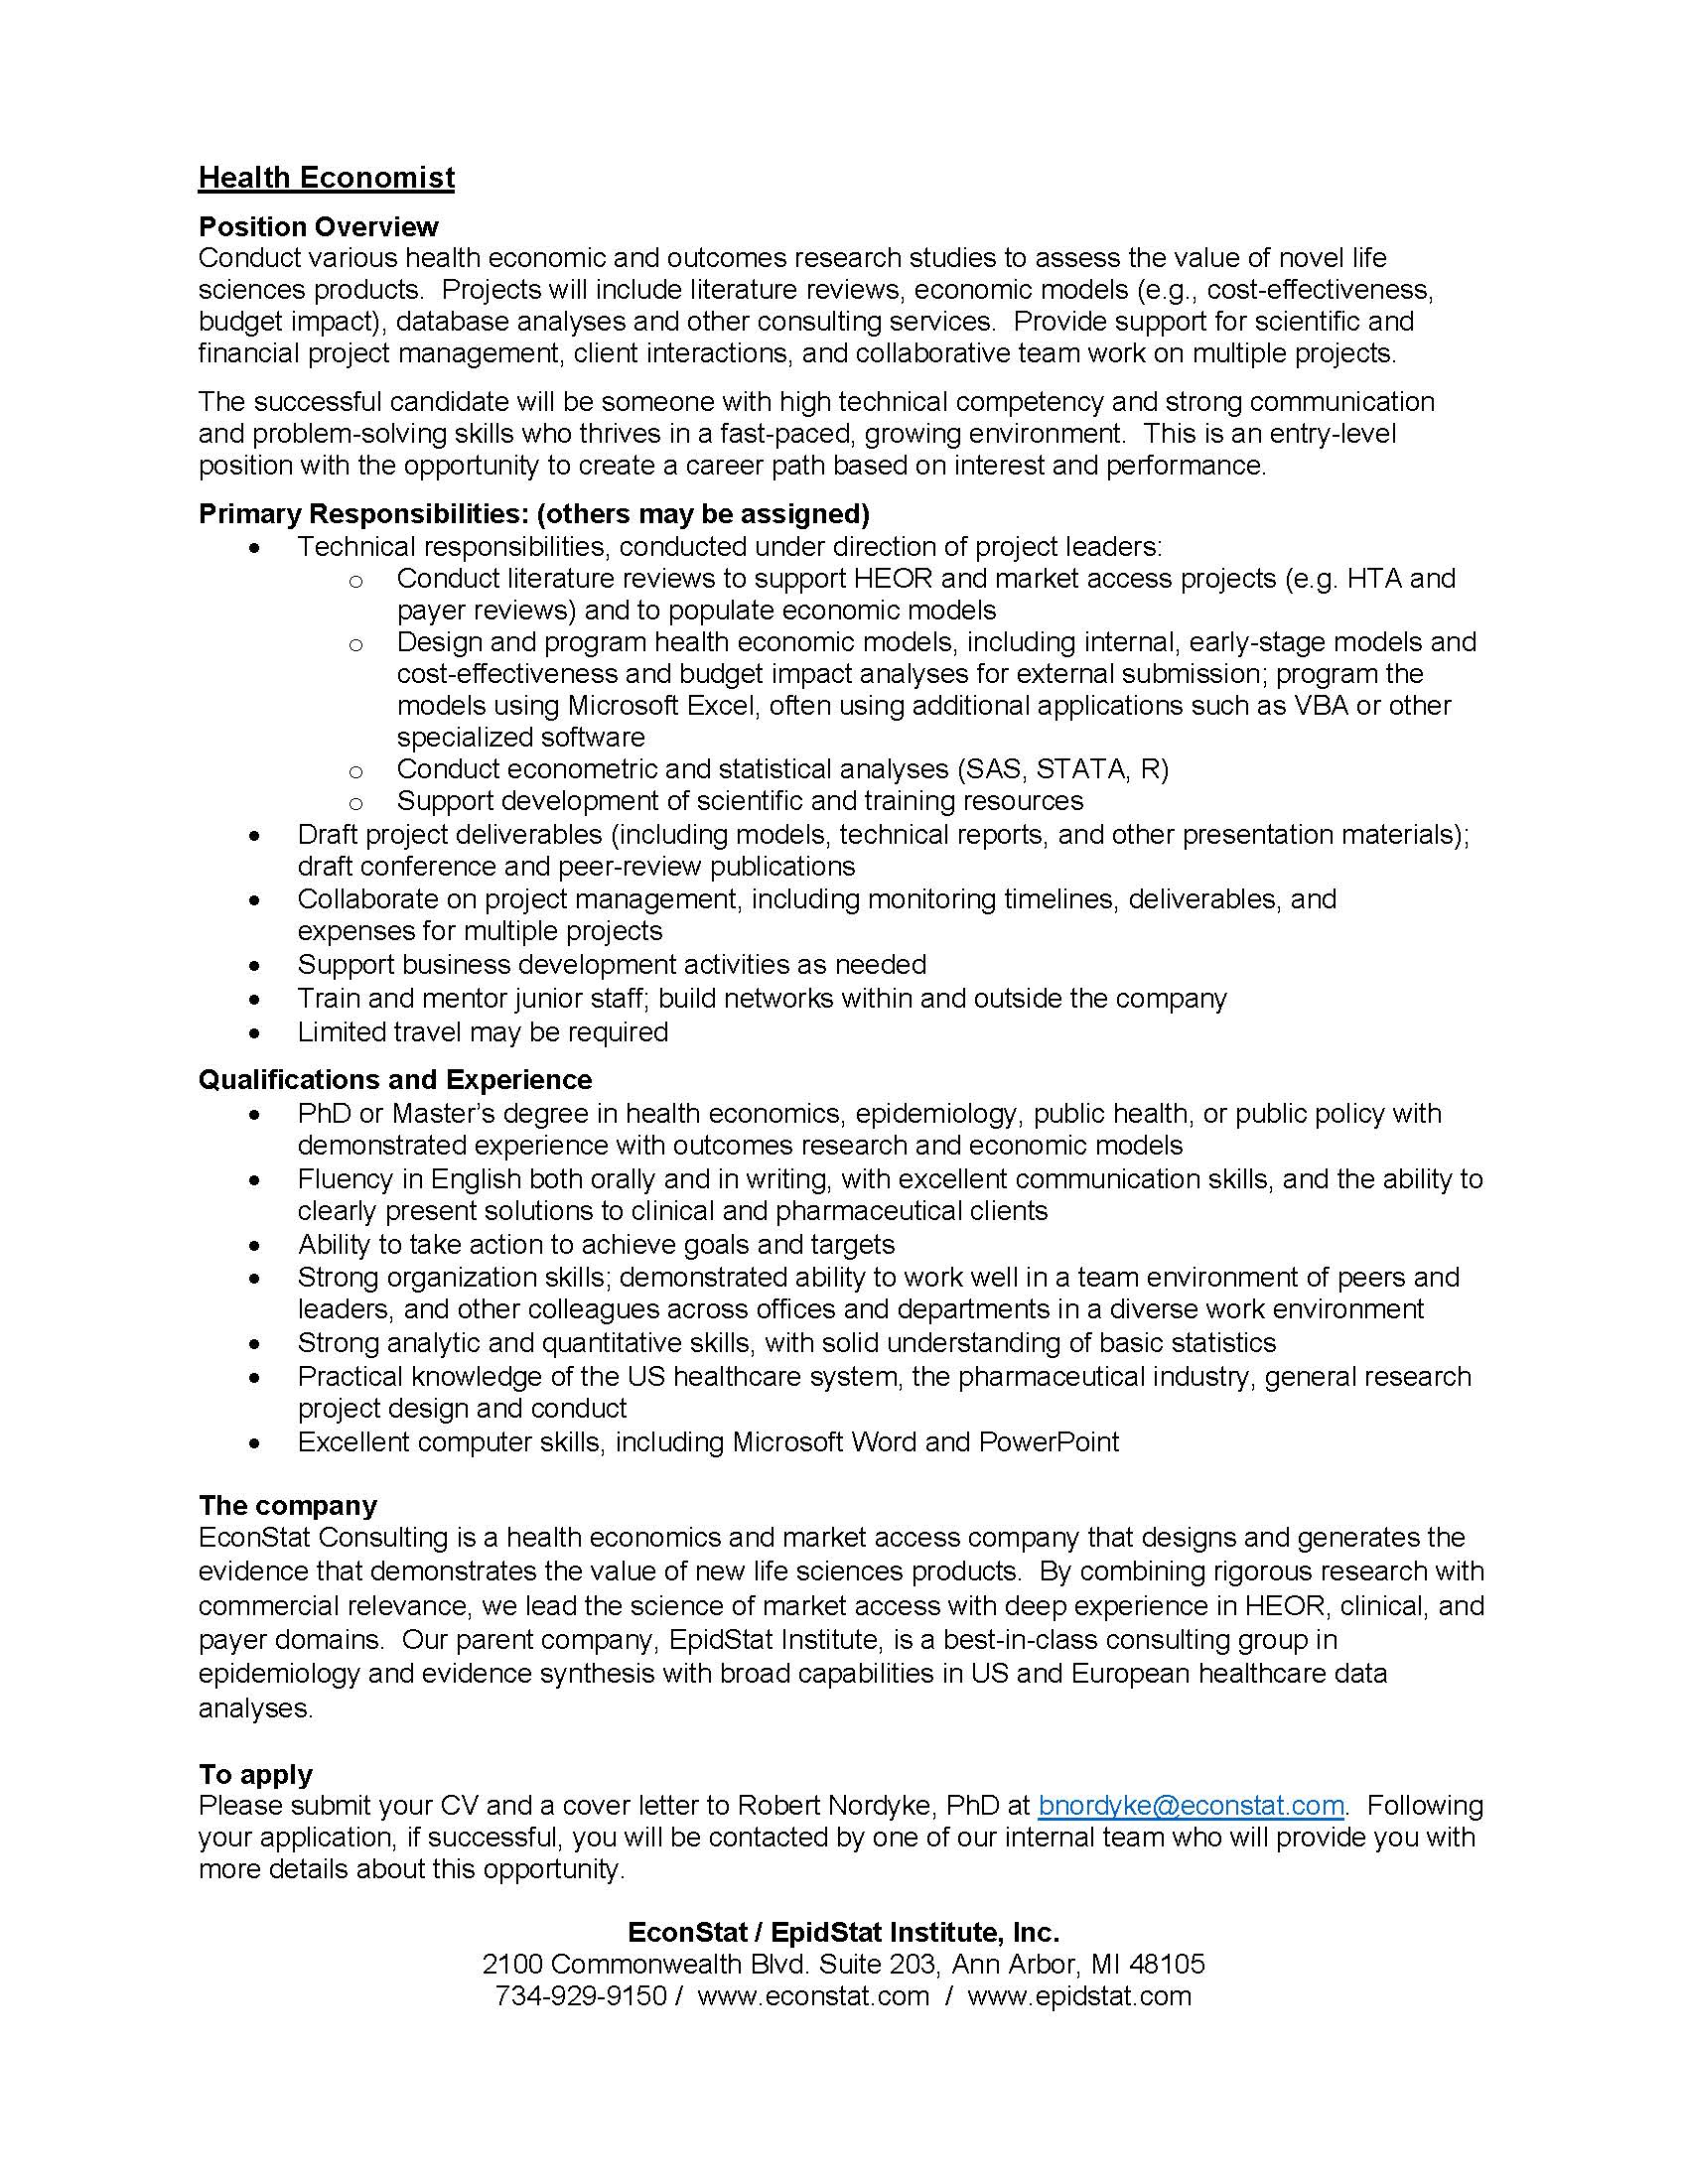 Hpm student announcements career opportunities department of epidemiologist needed at epidstat institute 1betcityfo Choice Image